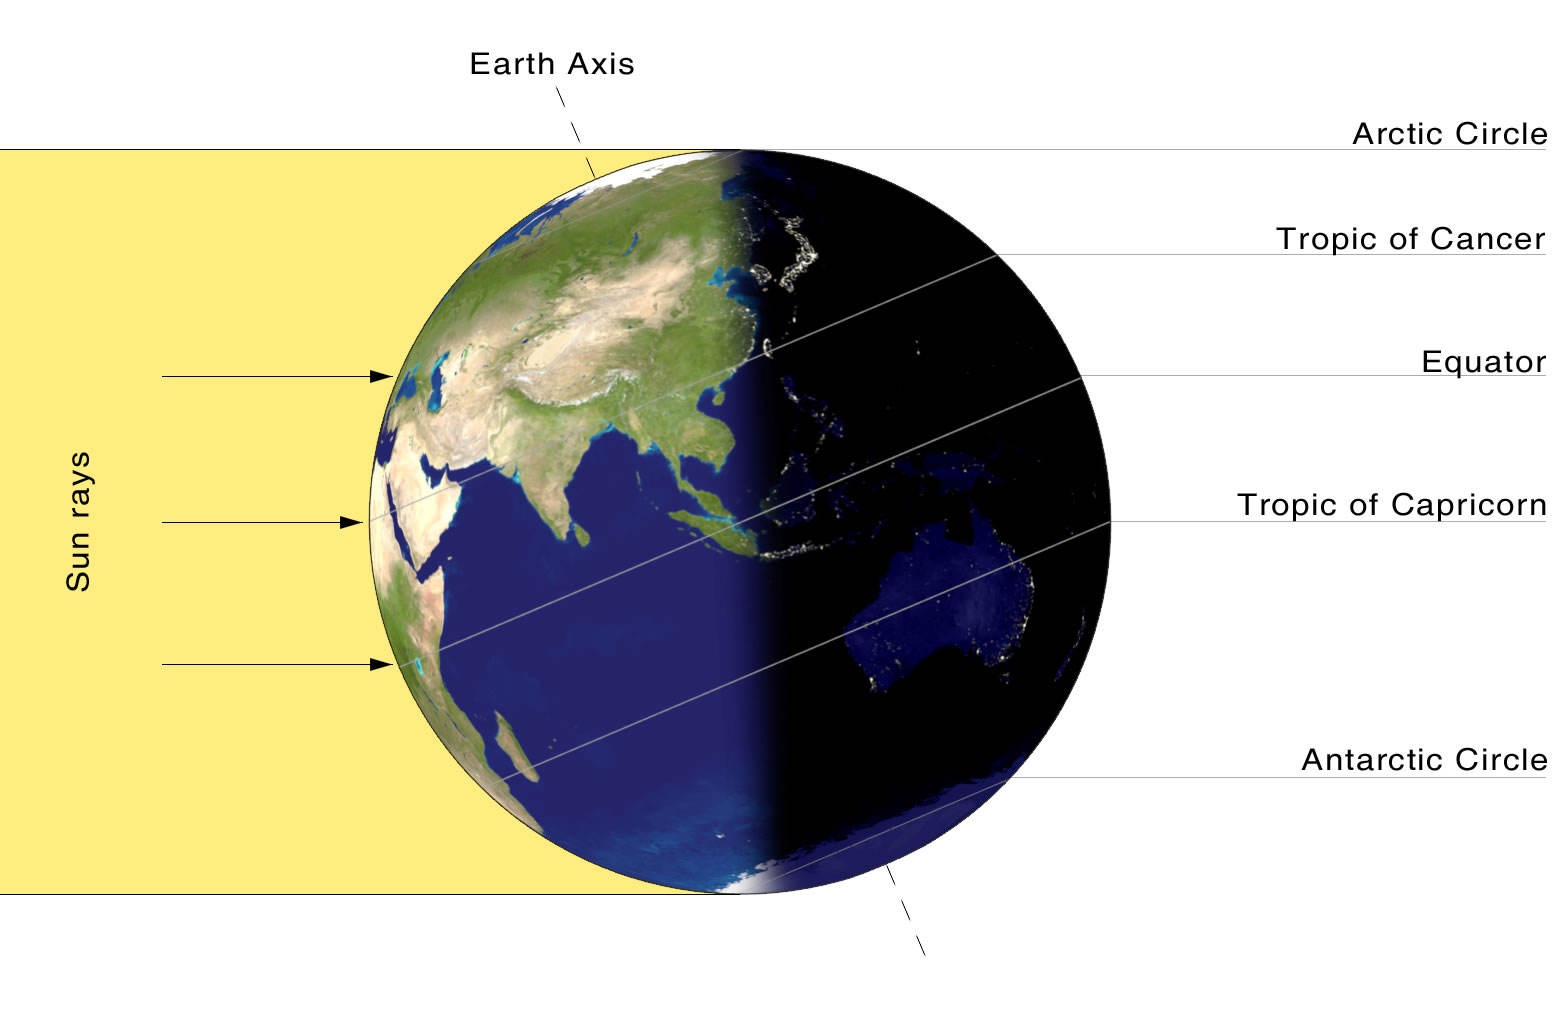 At this point, the earth's angle to the sun allows it to be summer in the Northern Hemisphere and Winter in the Southern Hemisphere.